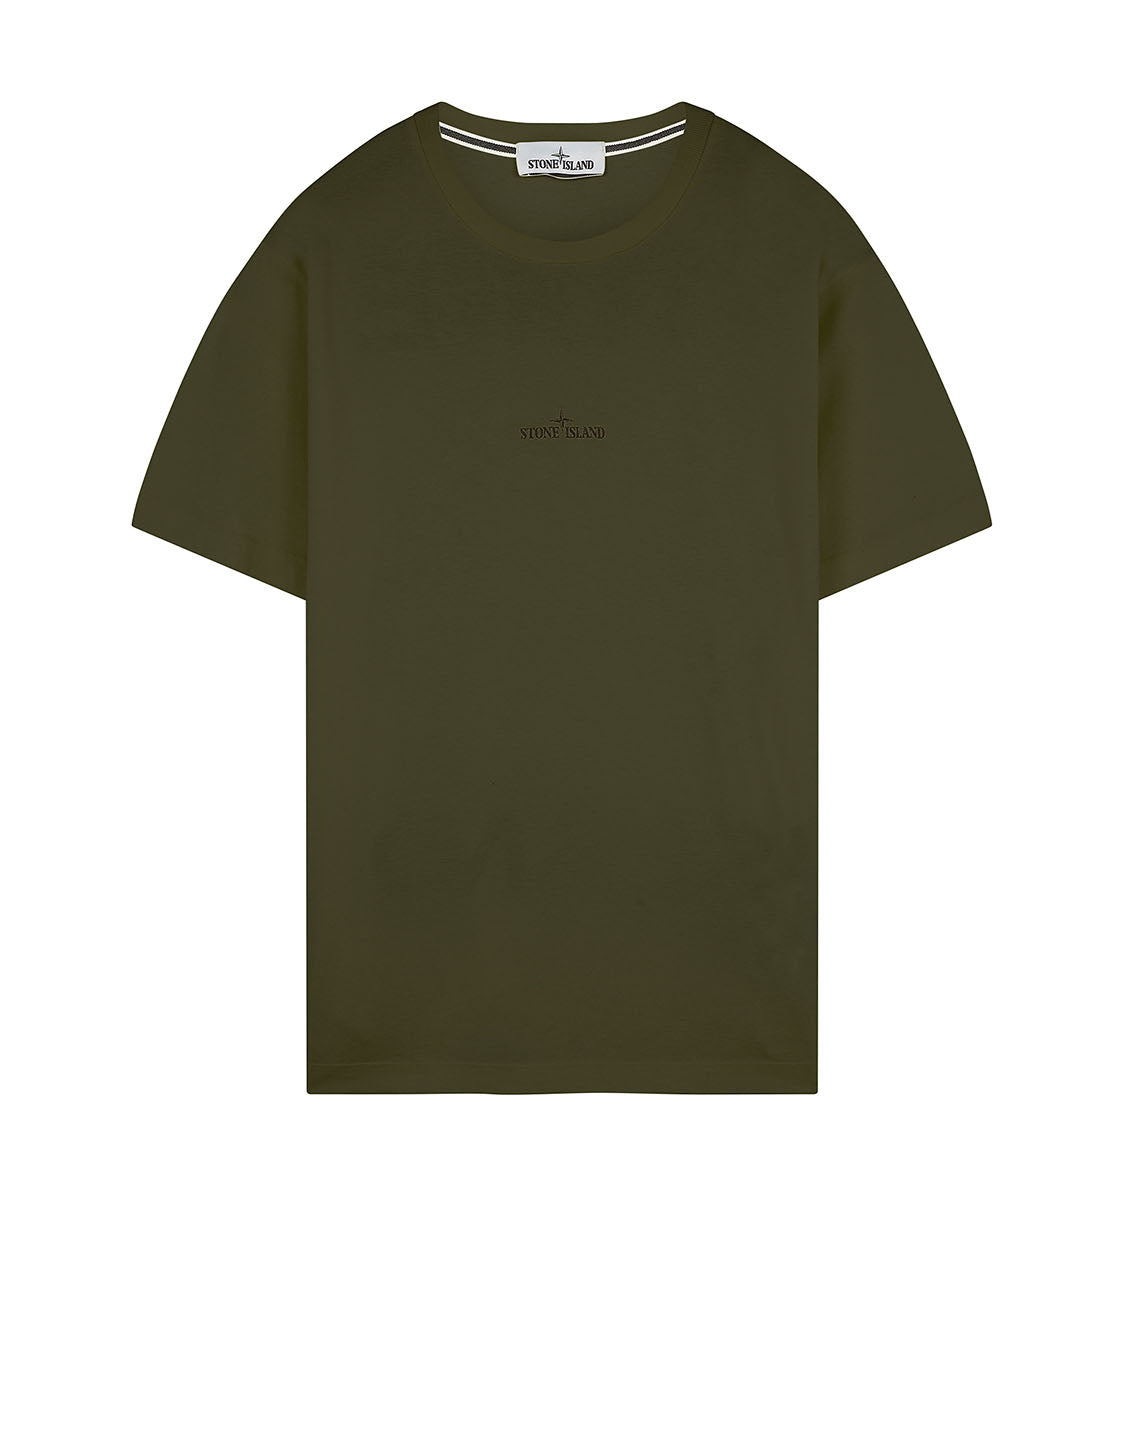 2NS85 'MARBLE THREE' T-Shirt in Olive Green